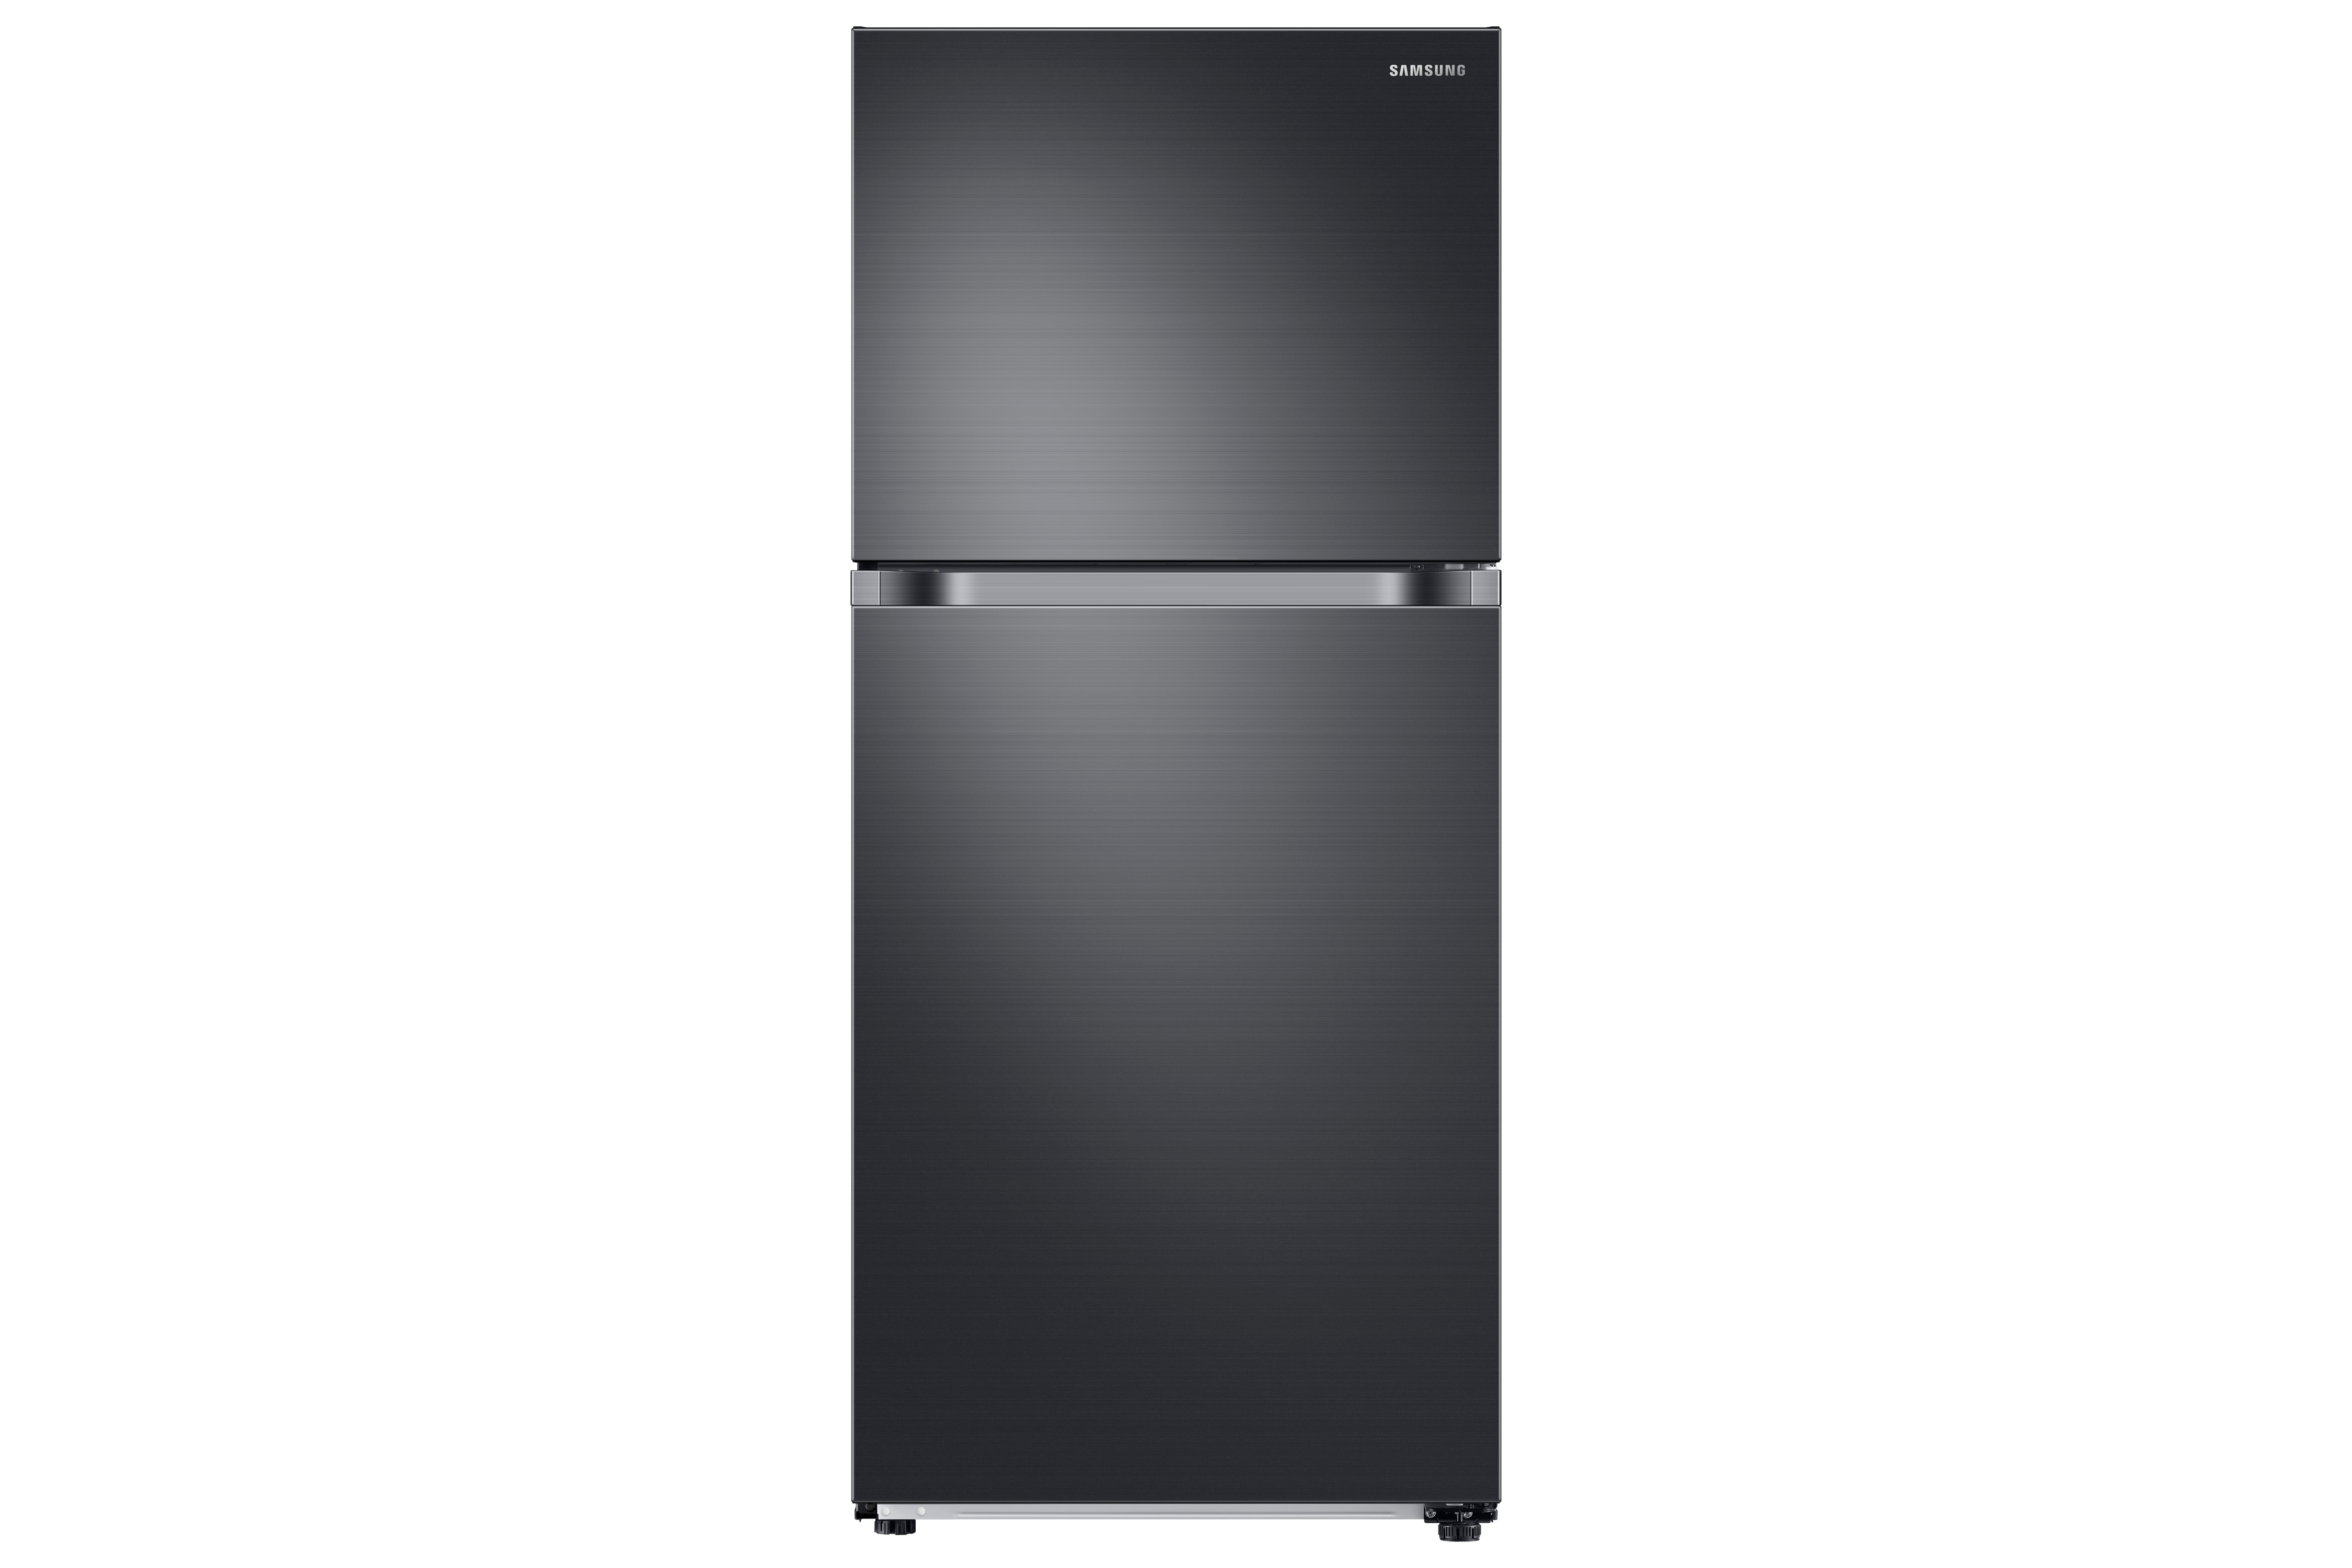 Black Freezer 18 Cu Ft Capacity Top Freezer Refrigerator With Flexzone And Automatic Ice Maker Refrigerators Rt18m6215sg Aa Samsung Us